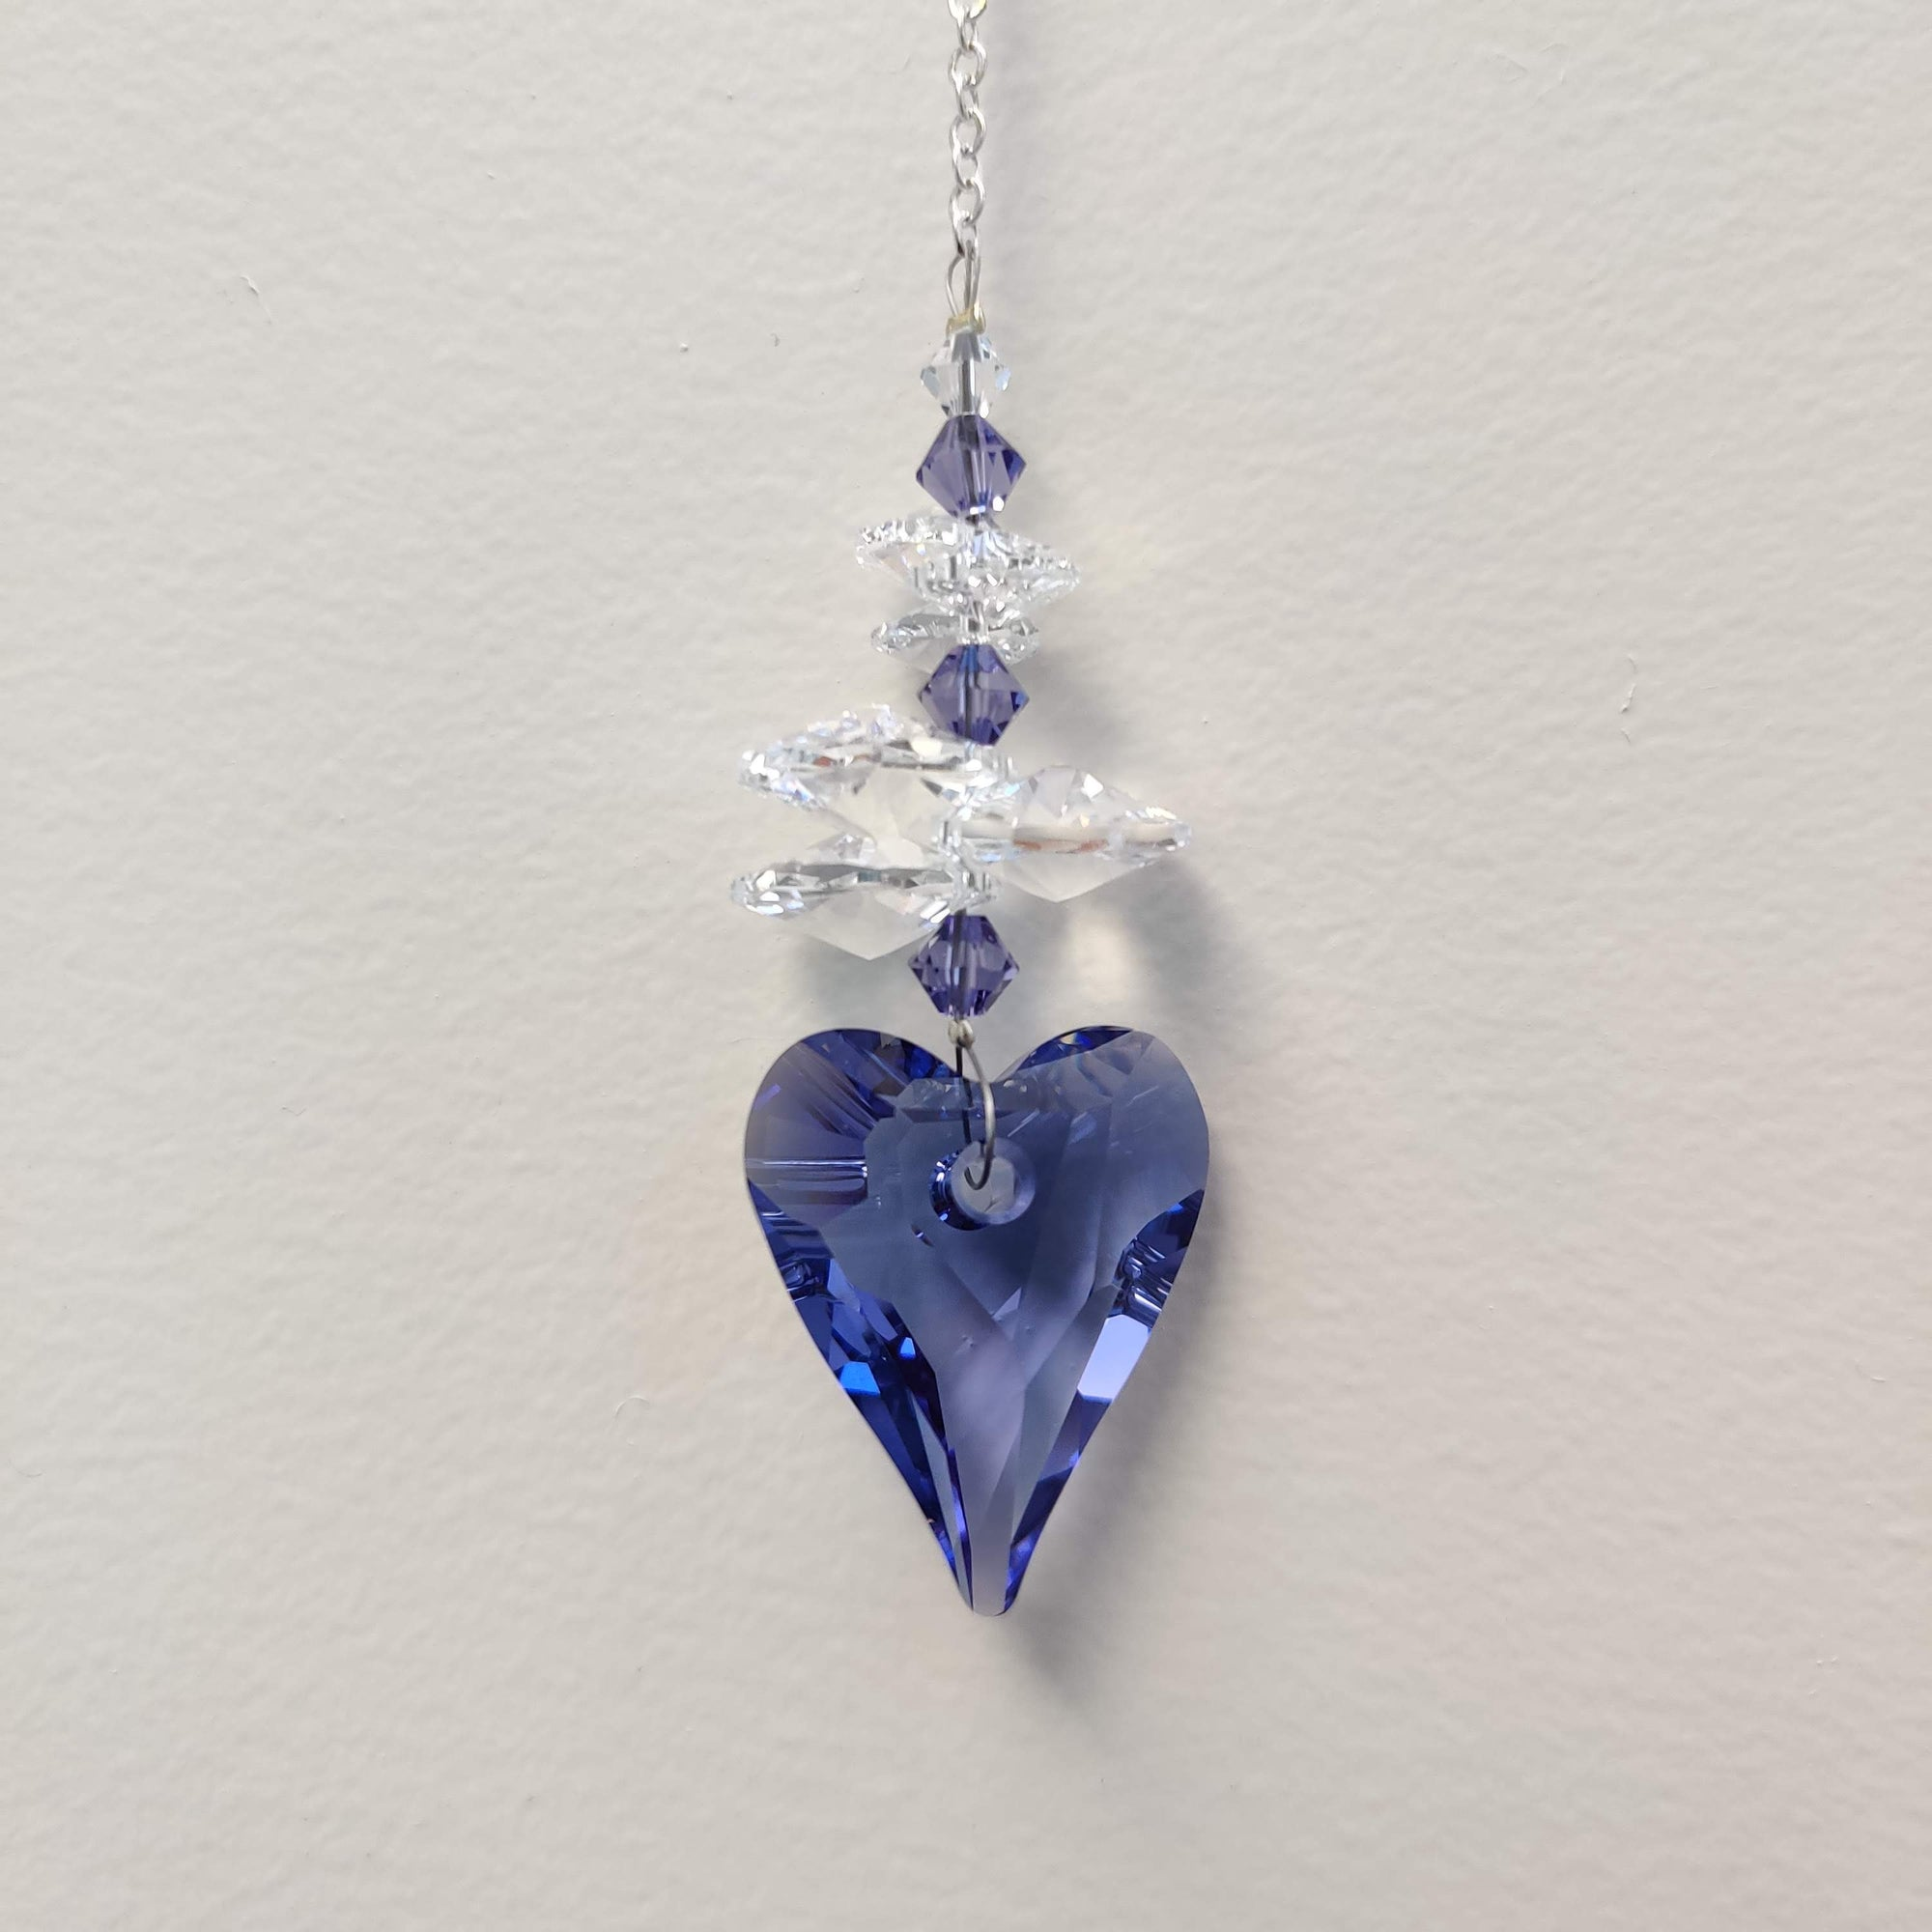 Clarus Ice Swarovski Crystal - Tanzanite Wild Heart - Rivendell Shop